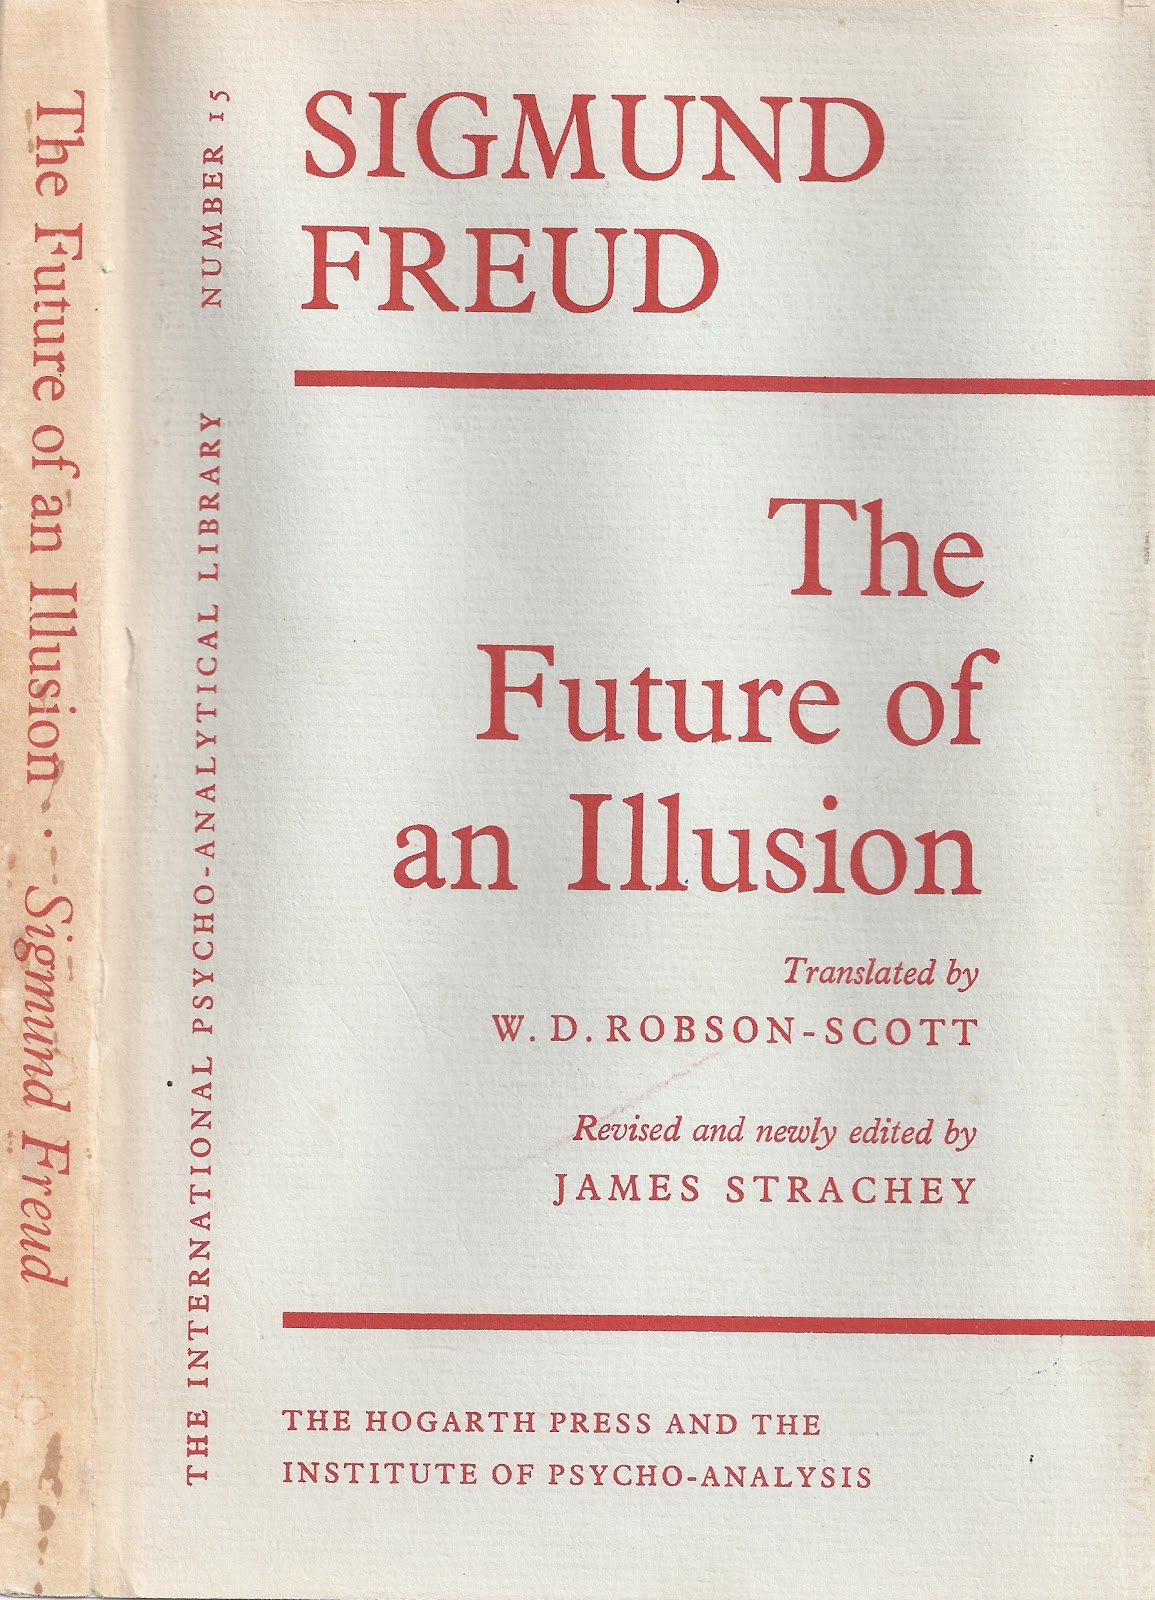 freud and the future of an illusion